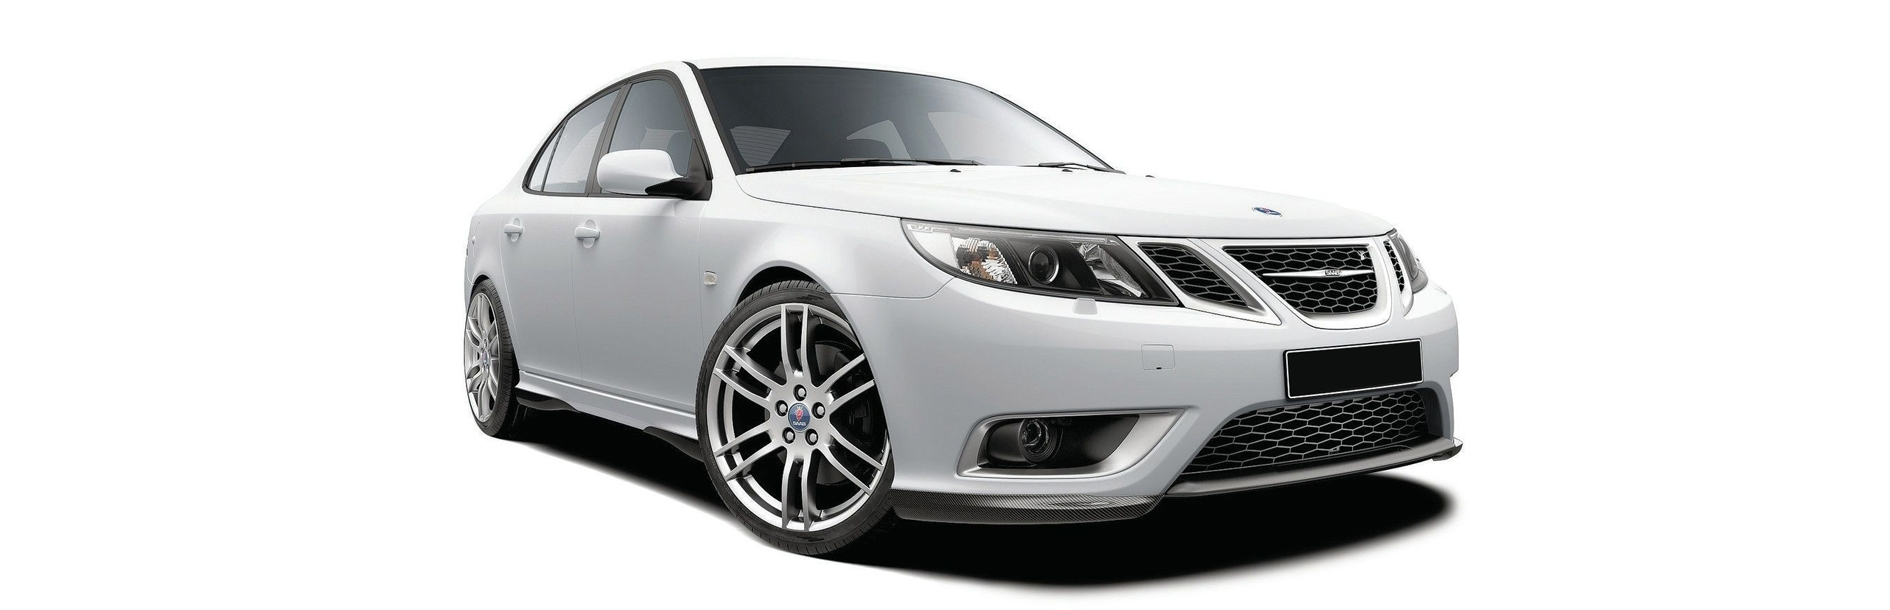 Saab Alloy Wheels and Tyre Packages.